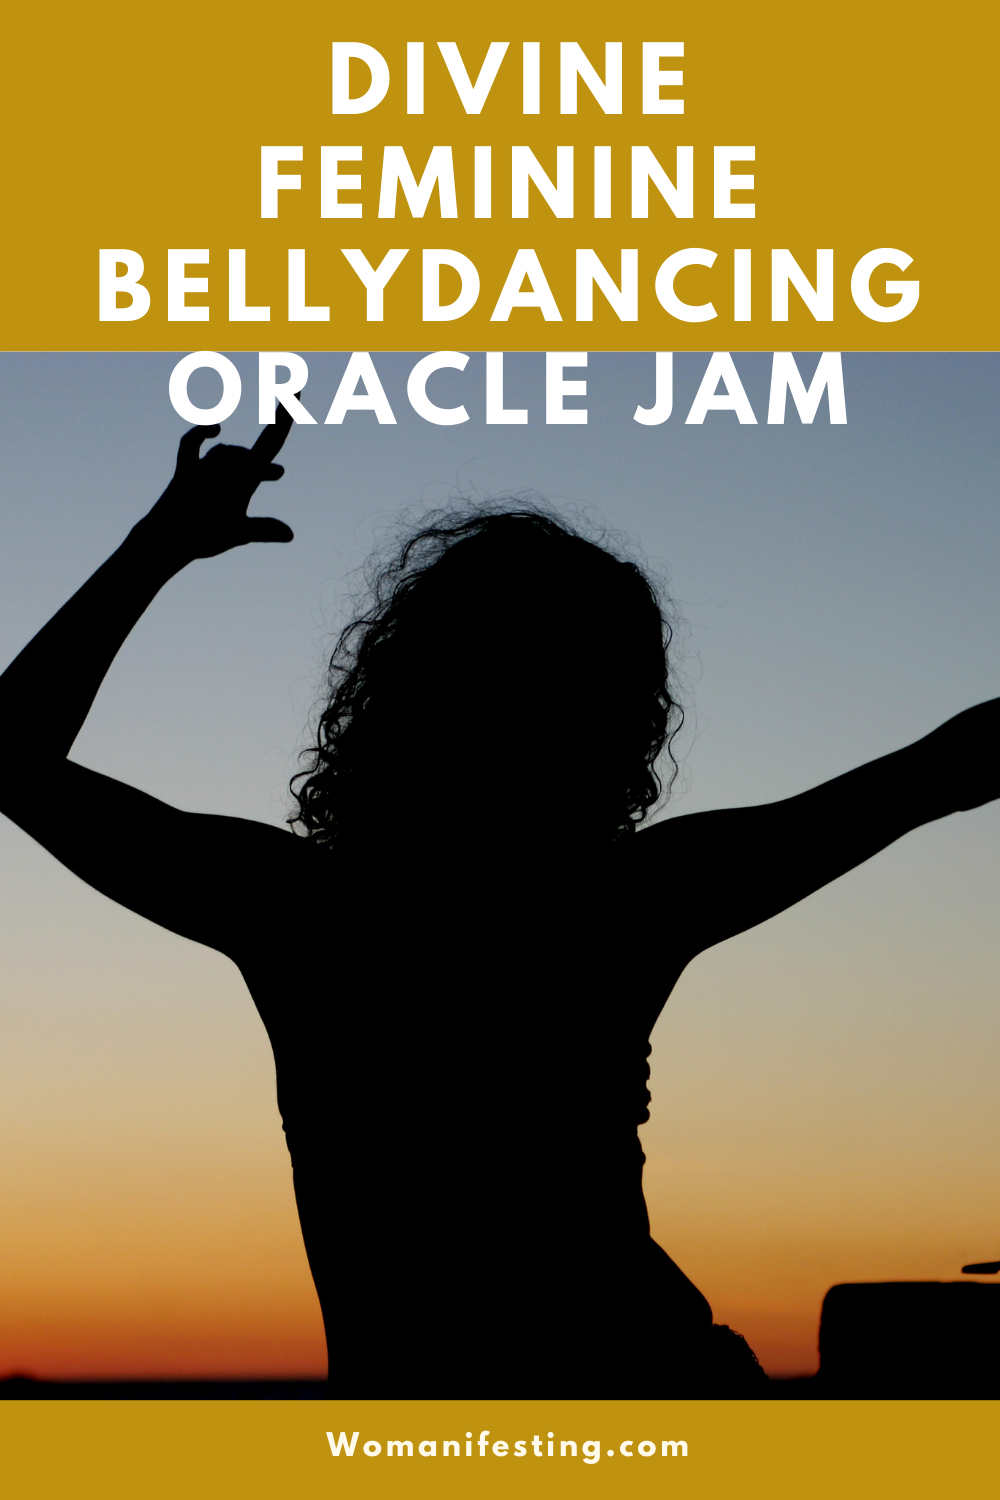 African Goddess Rising Oracle Launch: Bellydancing Divine Feminine Party [Video]